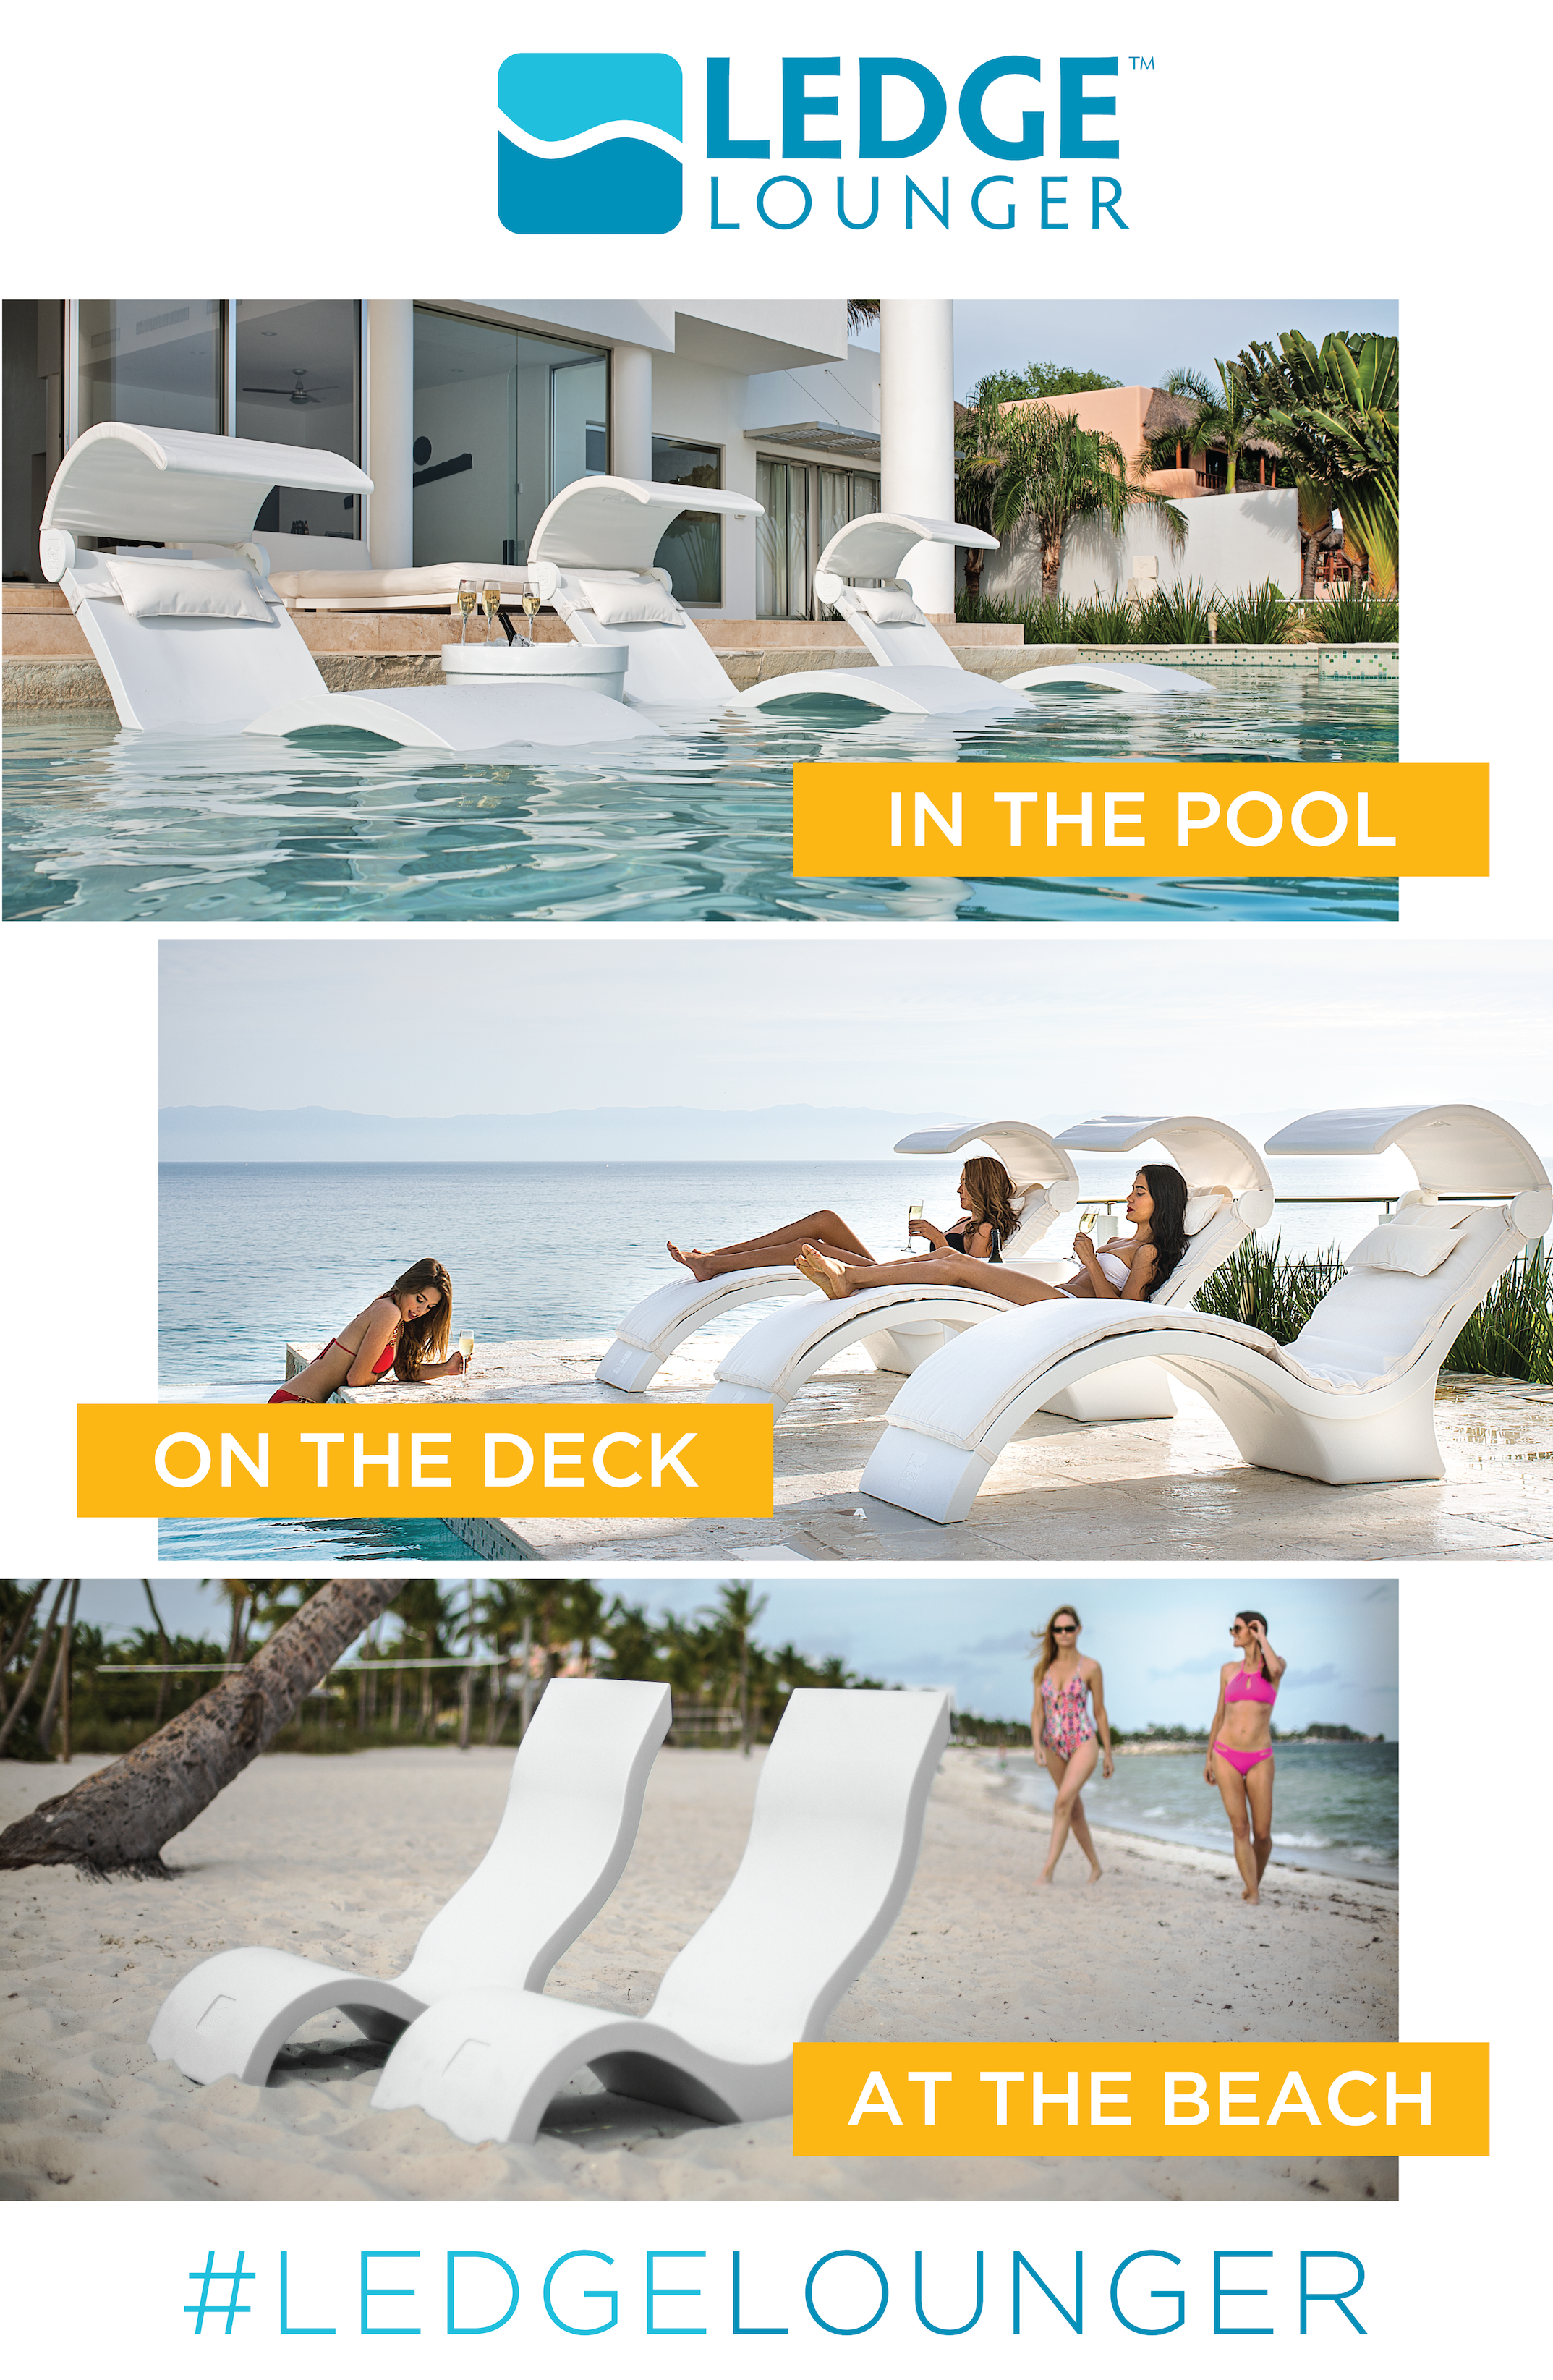 Outdoor furniture by Ledge Lounger Designed for in pool use but